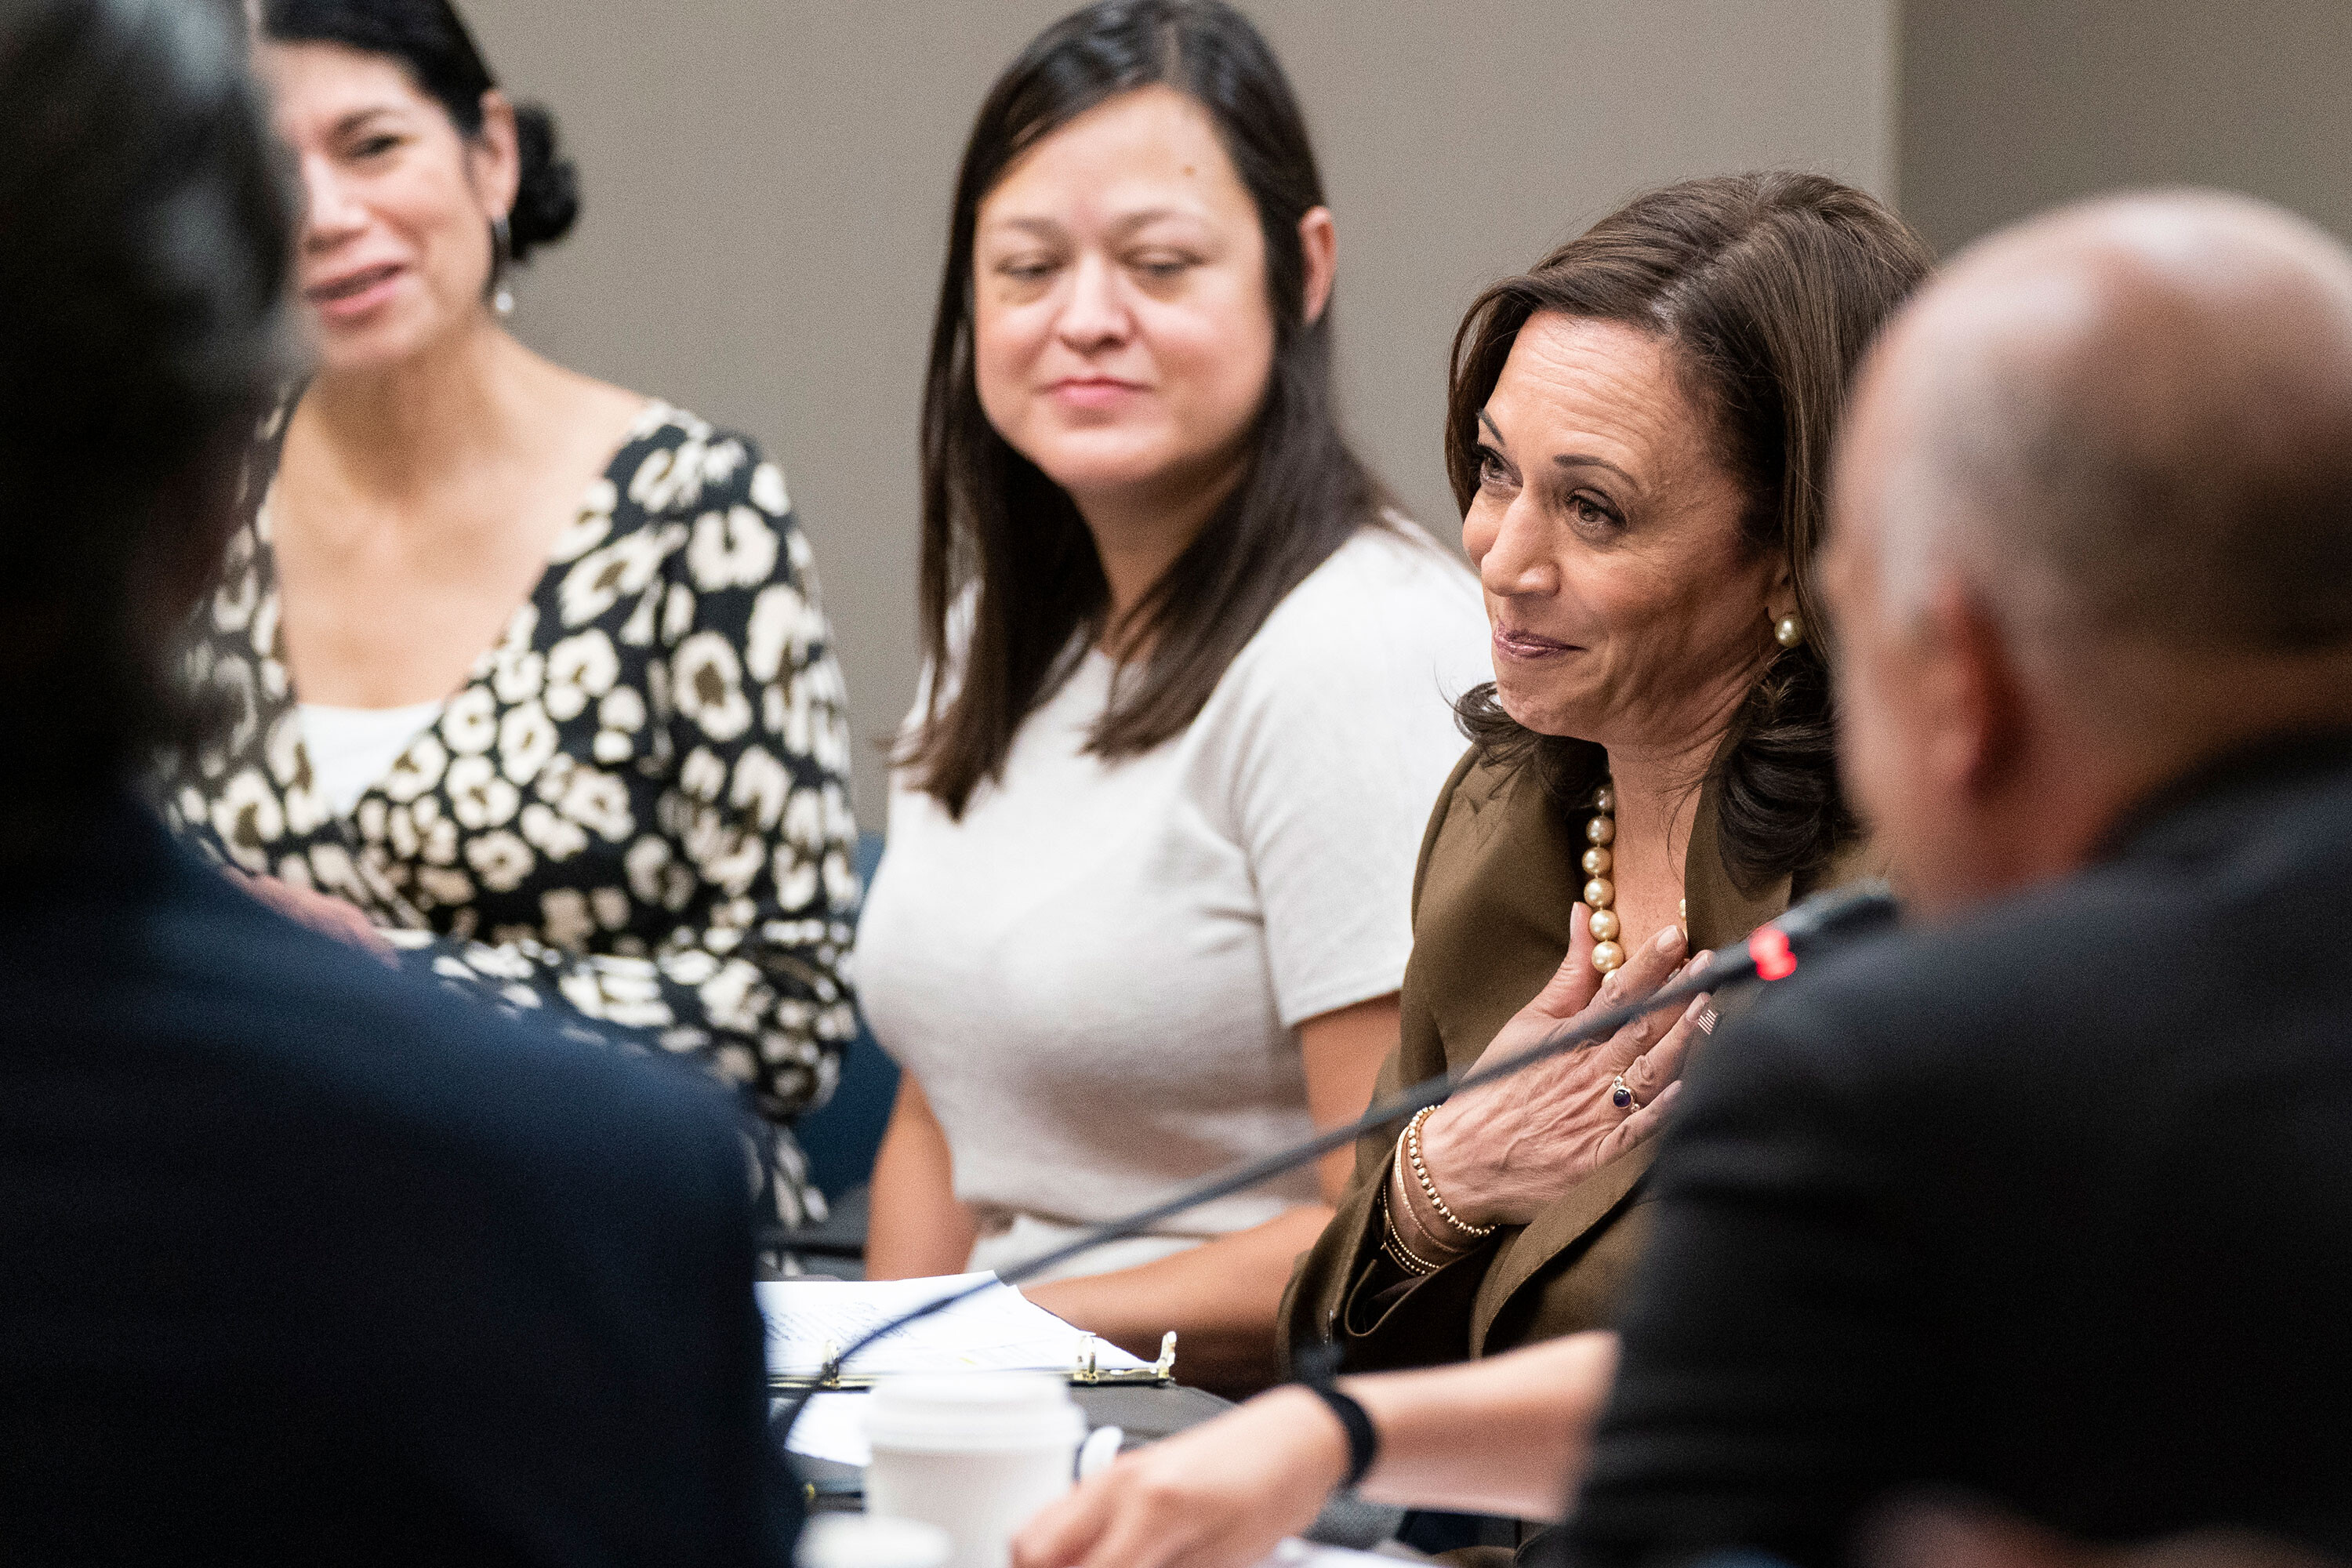 Harris tests negative for Covid-19 following meeting with Texas Democrats who tested positive